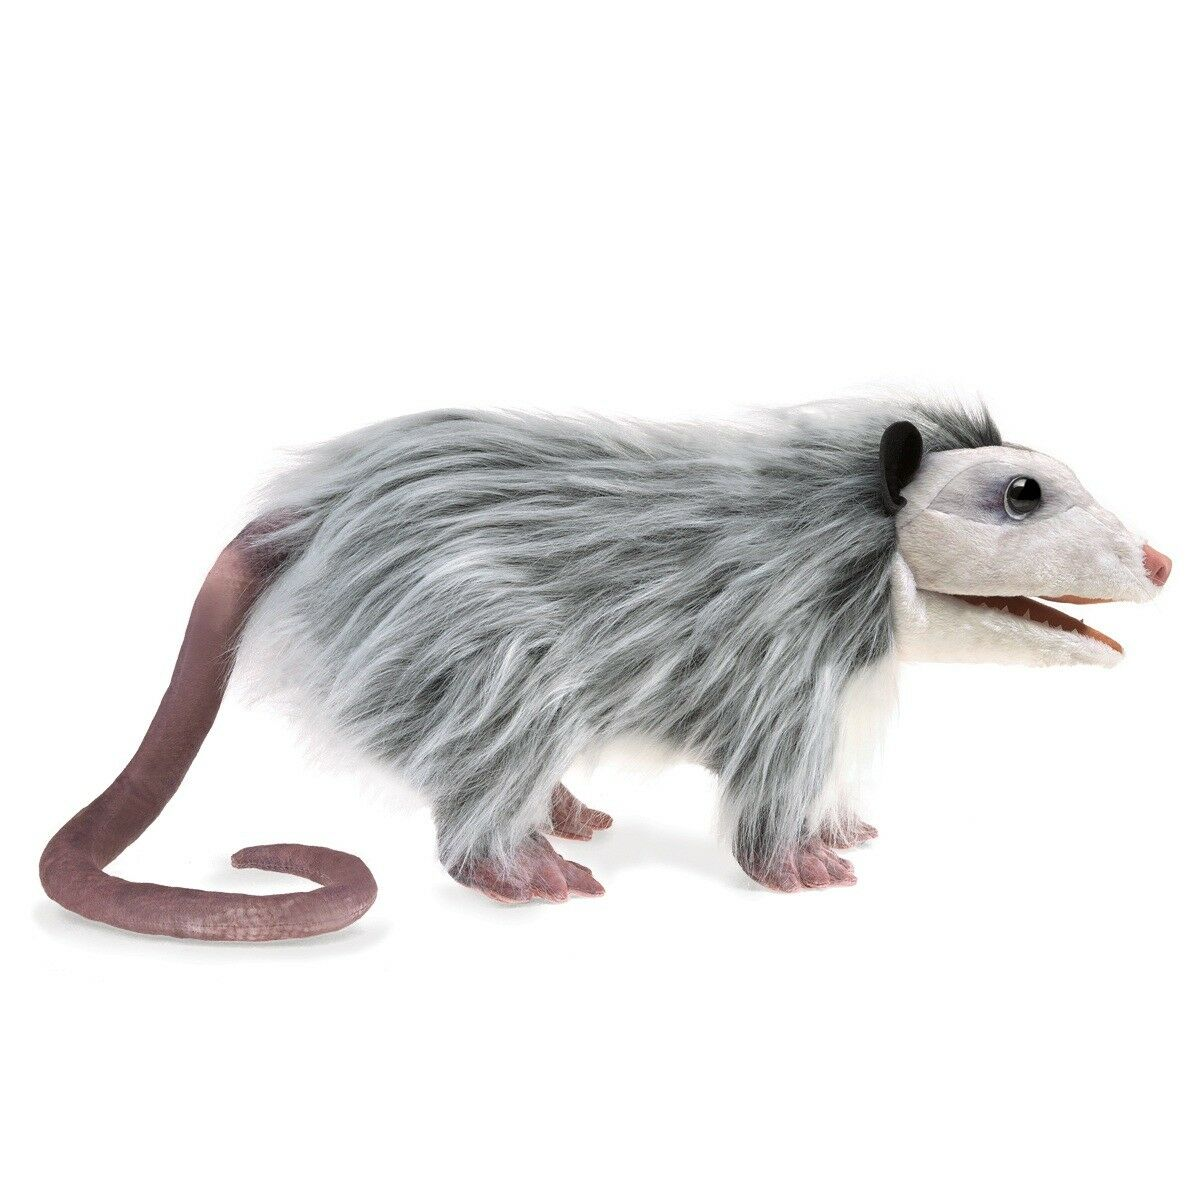 Opossum Hand Puppet with Movable Mouth & Forelegs by Folkmanis  MPN 3119 Unisex